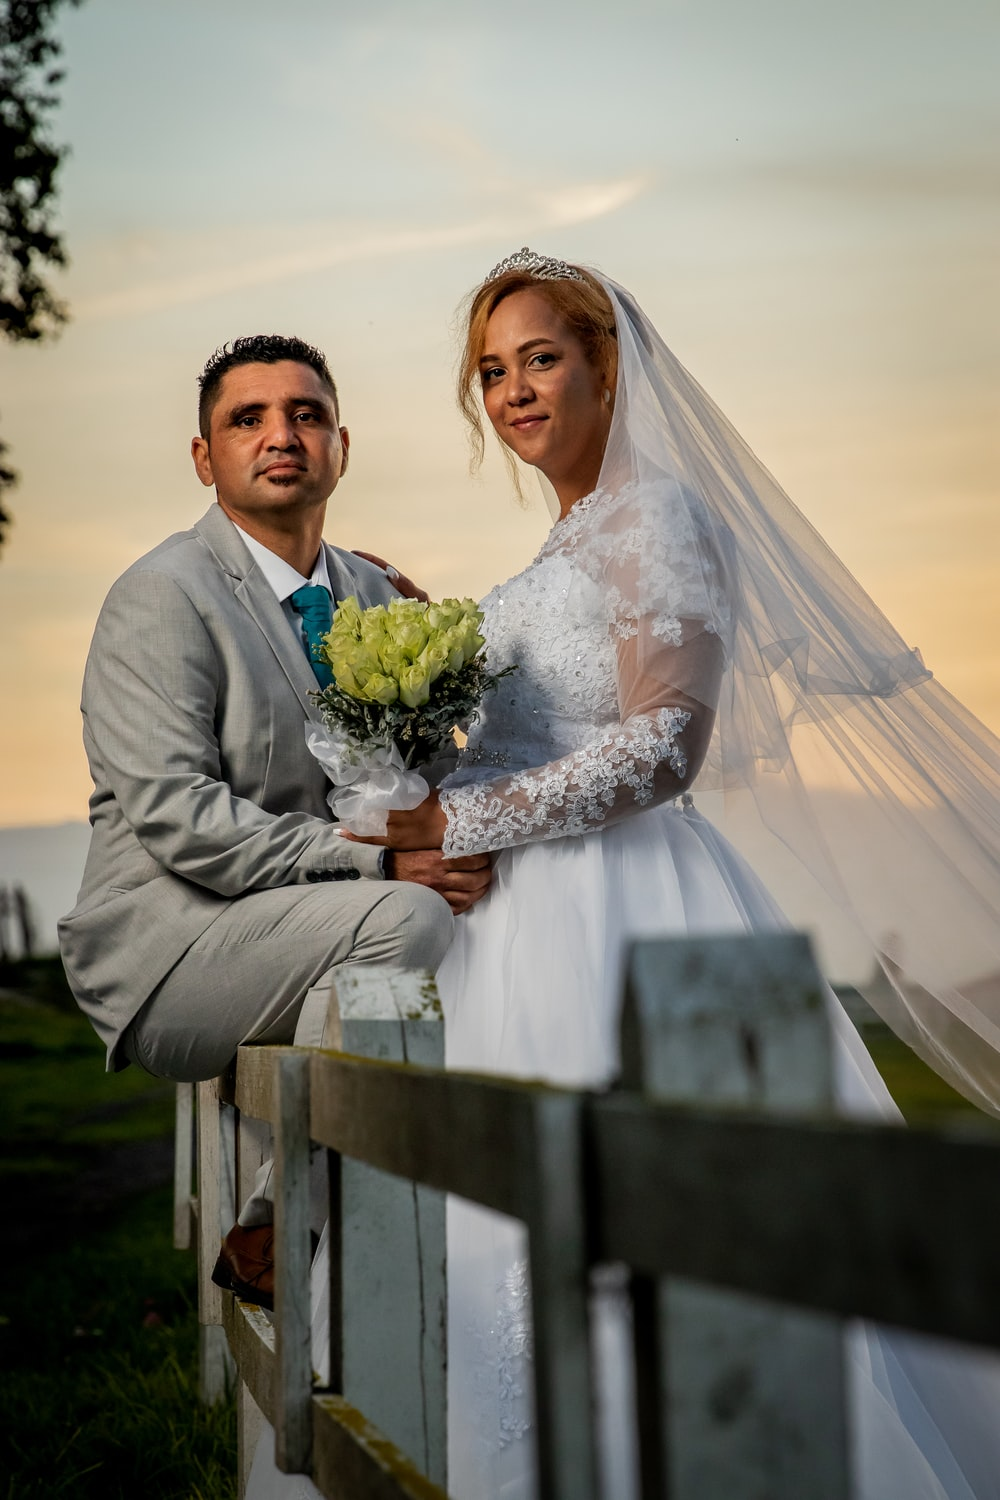 man in gray suit jacket holding bouquet of flowers beside woman in white wedding gown